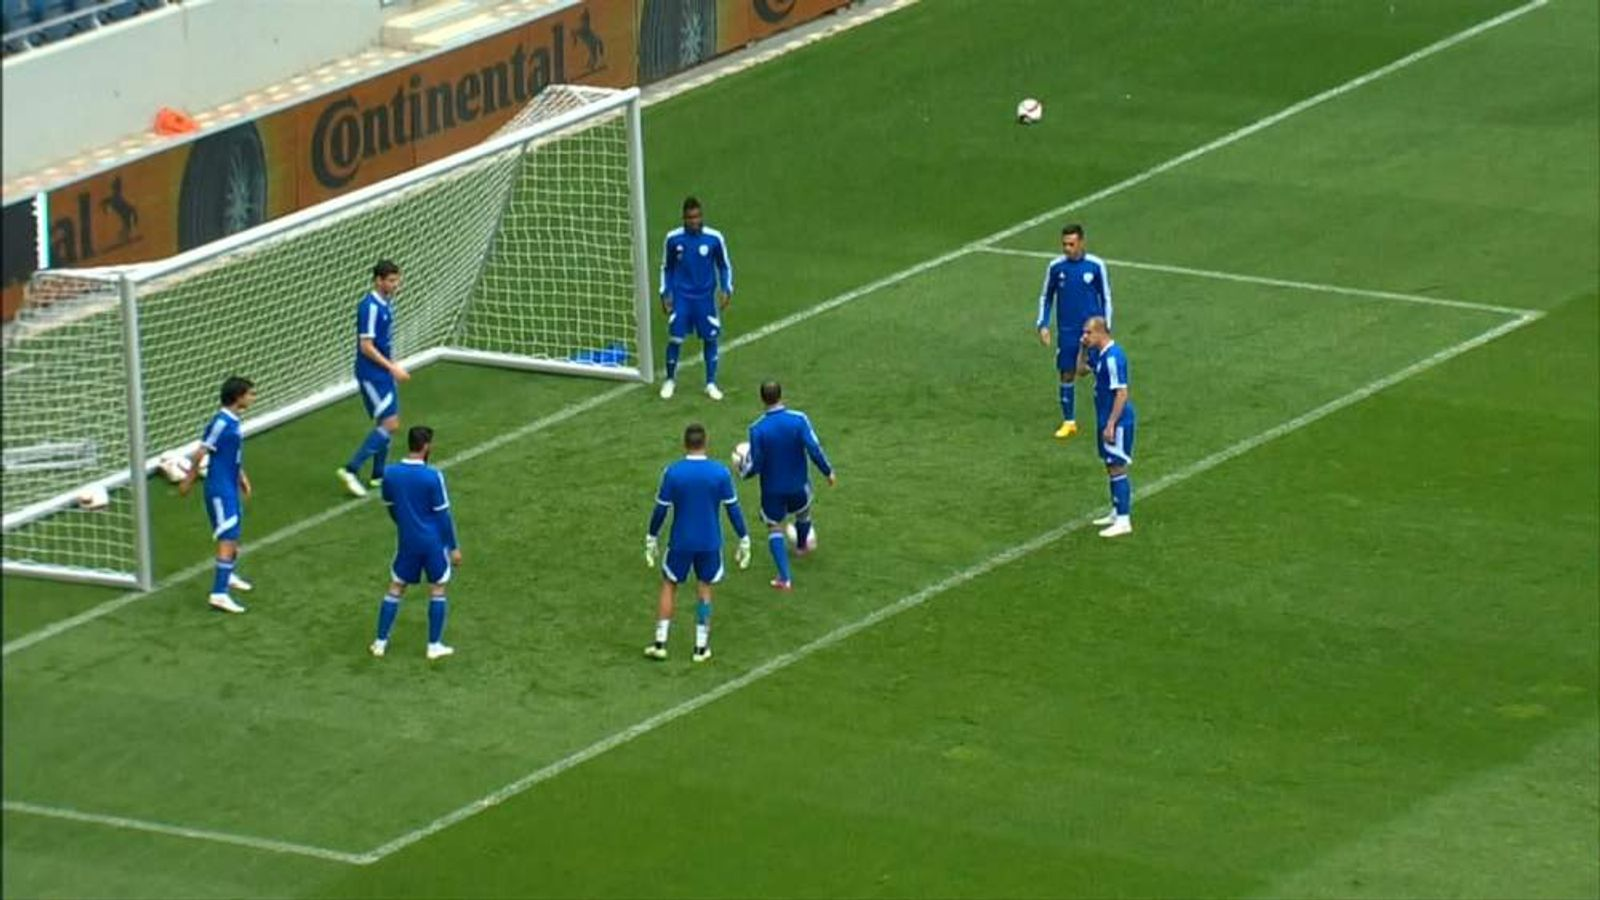 Israeli players in training